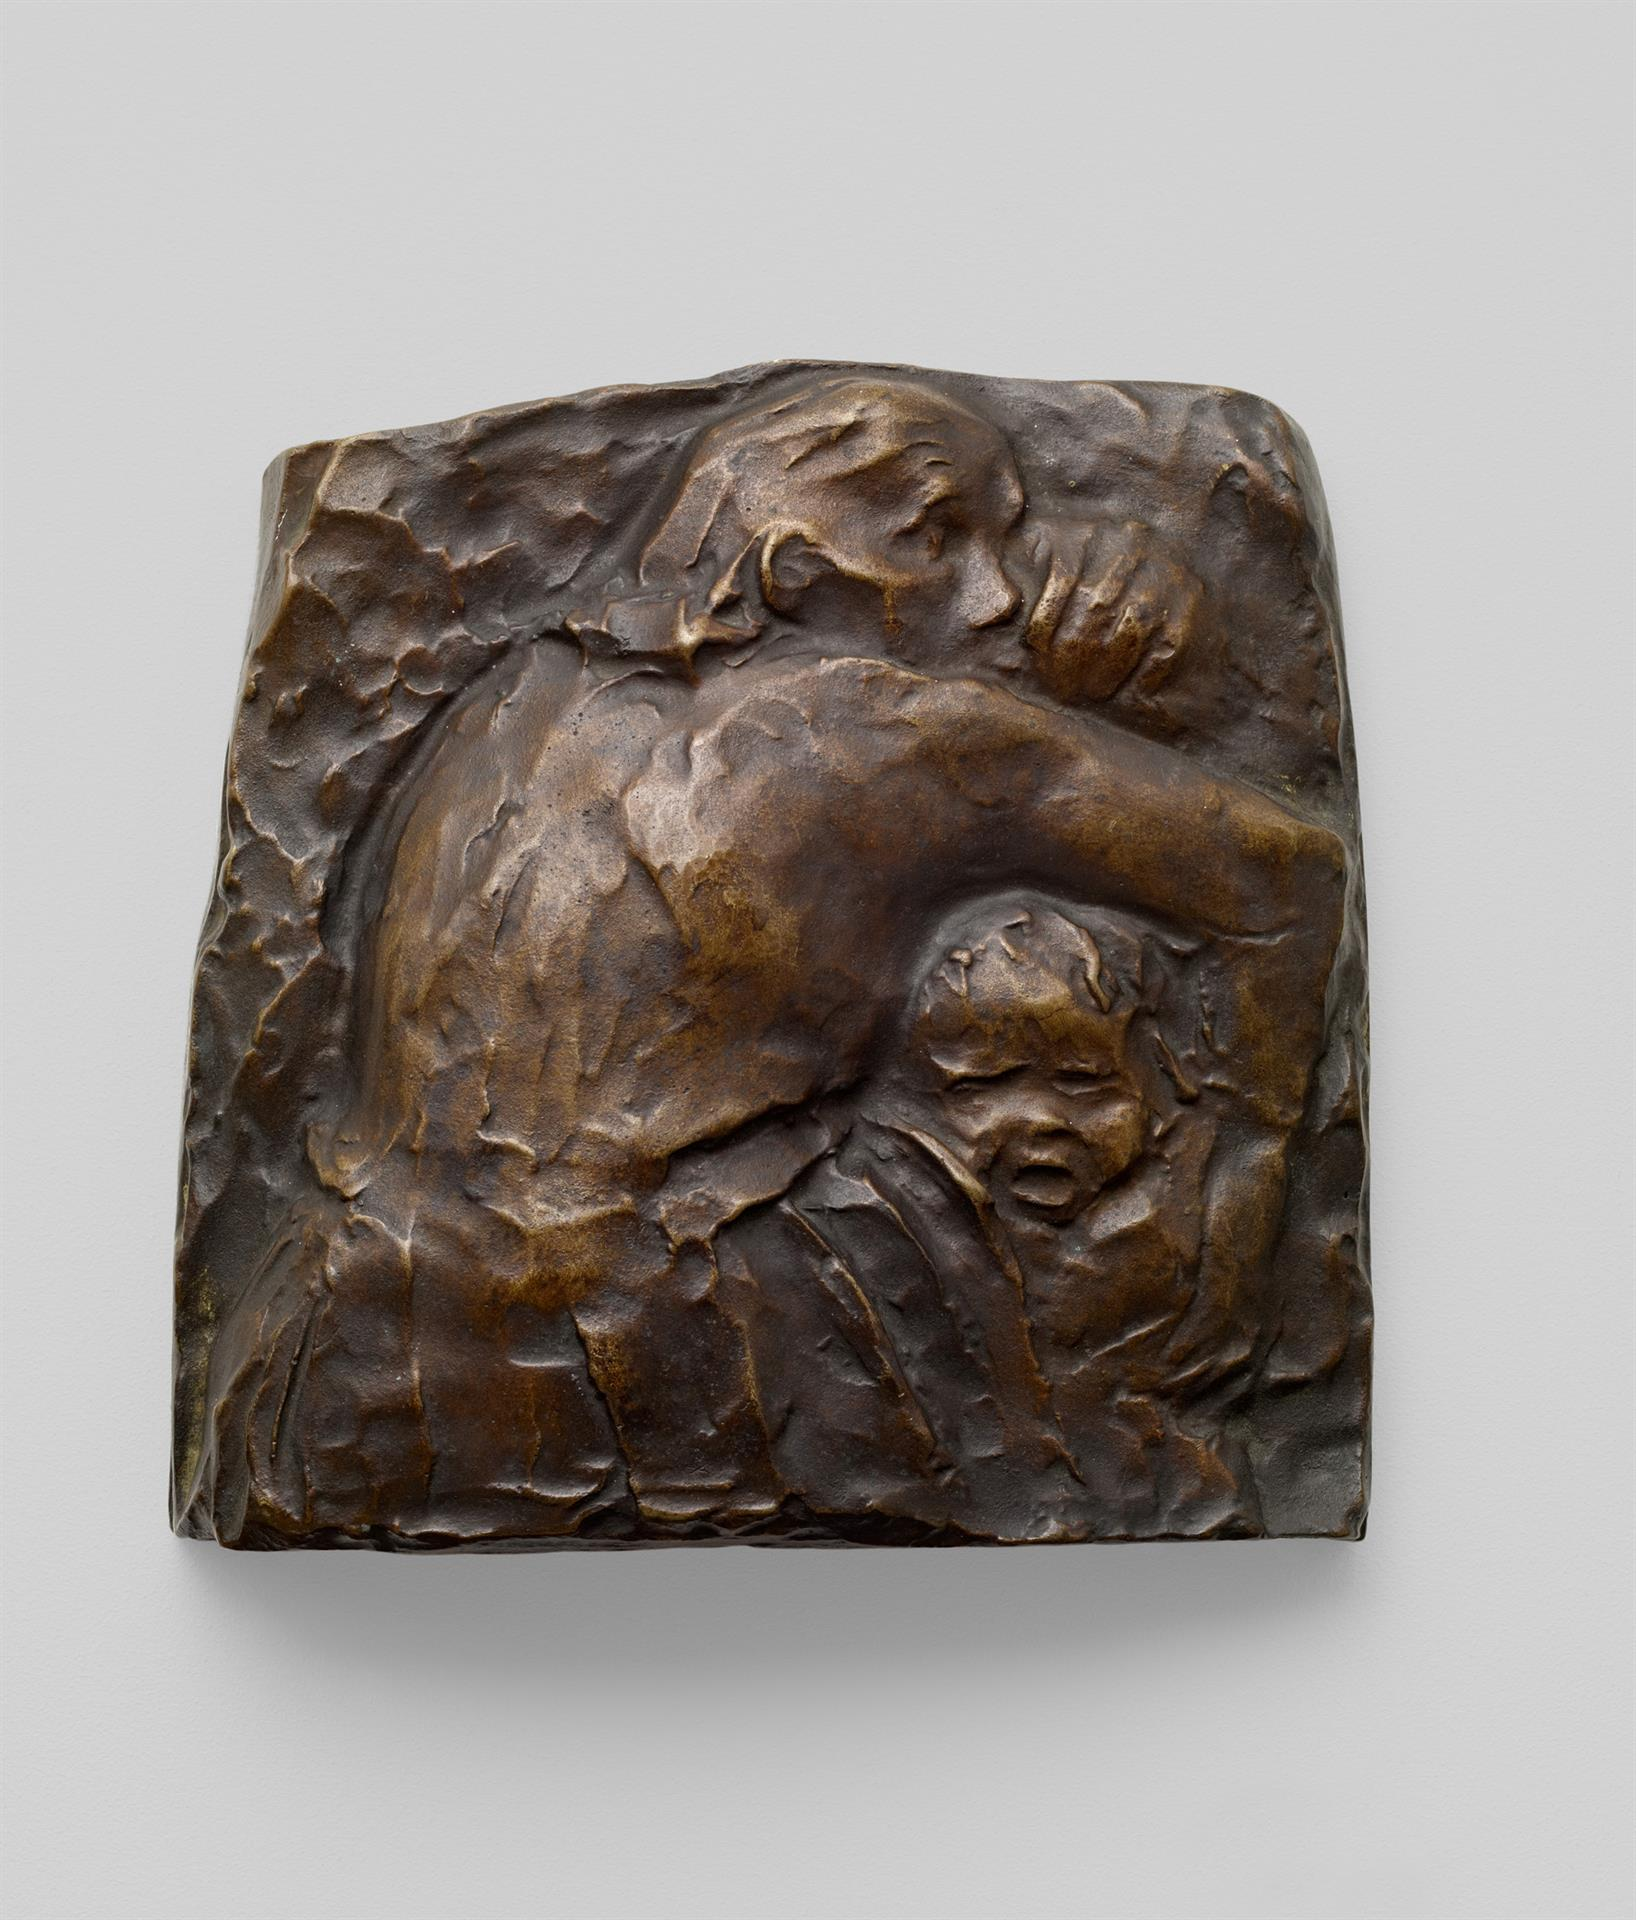 Käthe Kollwitz, Mother protecting her Child I, 1941, bronze, Seeler 41 I.B.1., Cologne Kollwitz Collection © Käthe Kollwitz Museum Köln